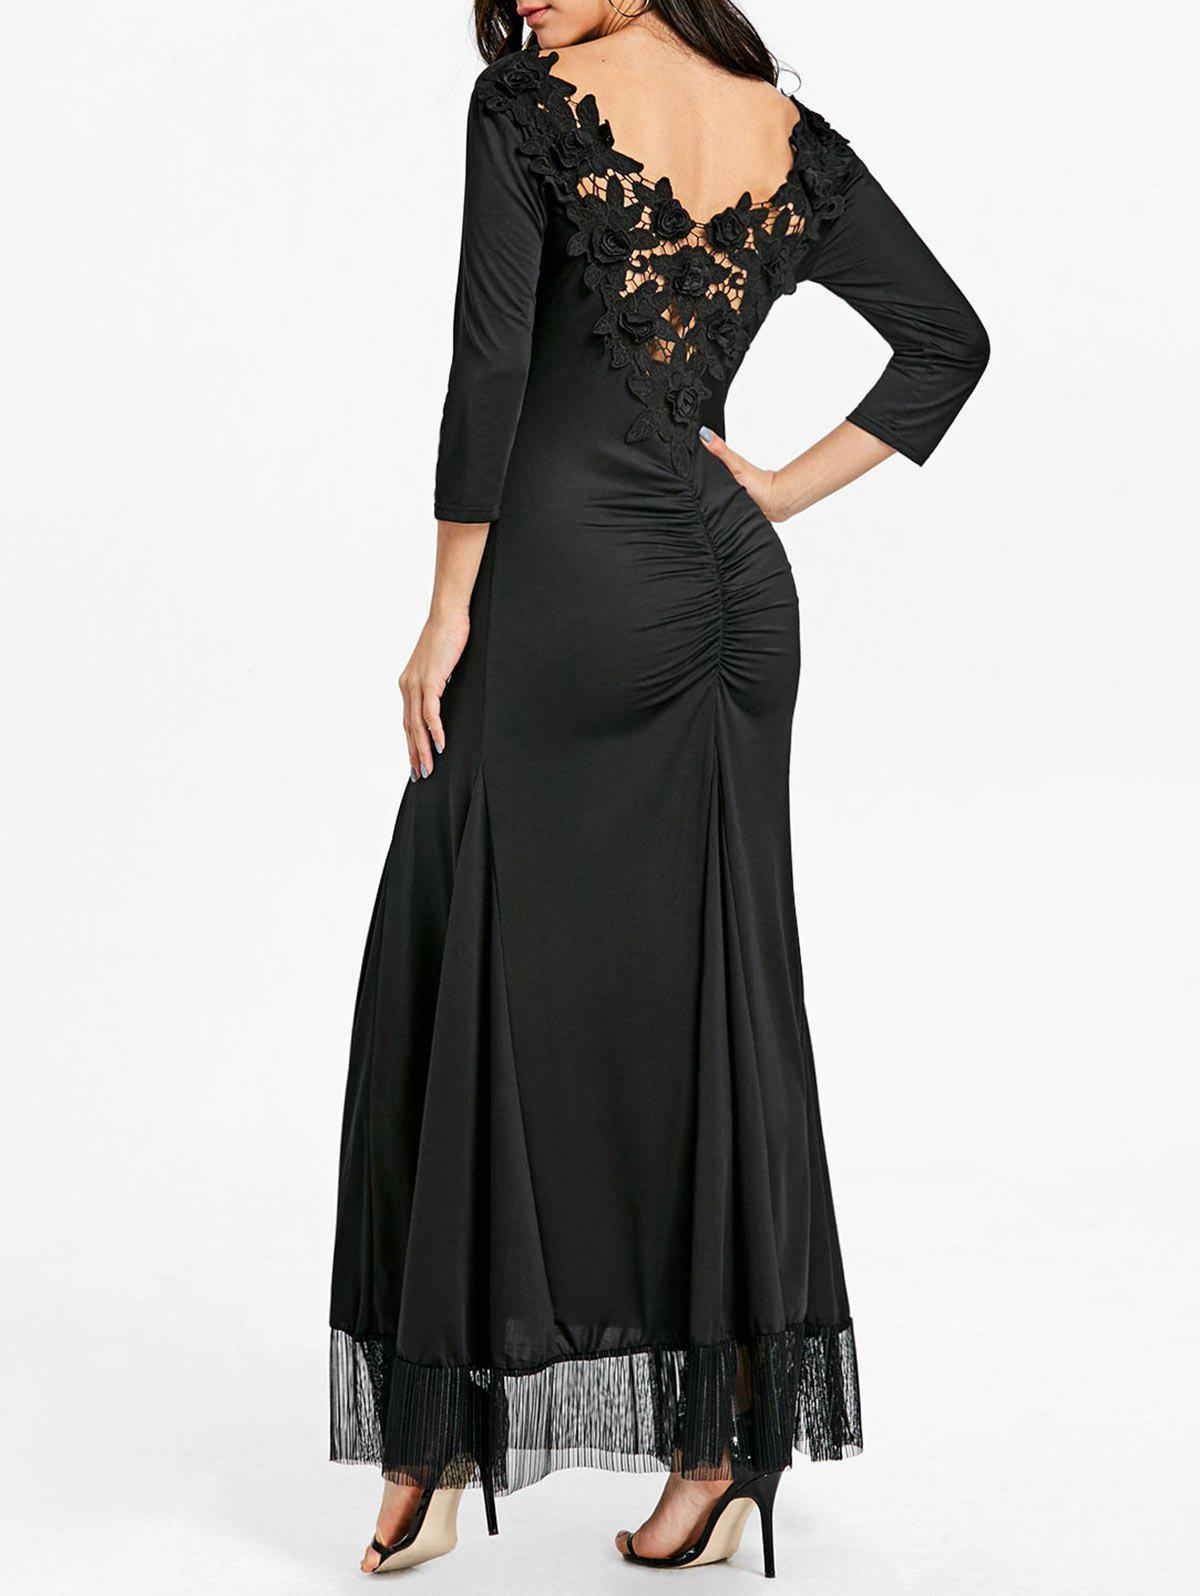 Shops Back Lace Ruched Floor Length Dress